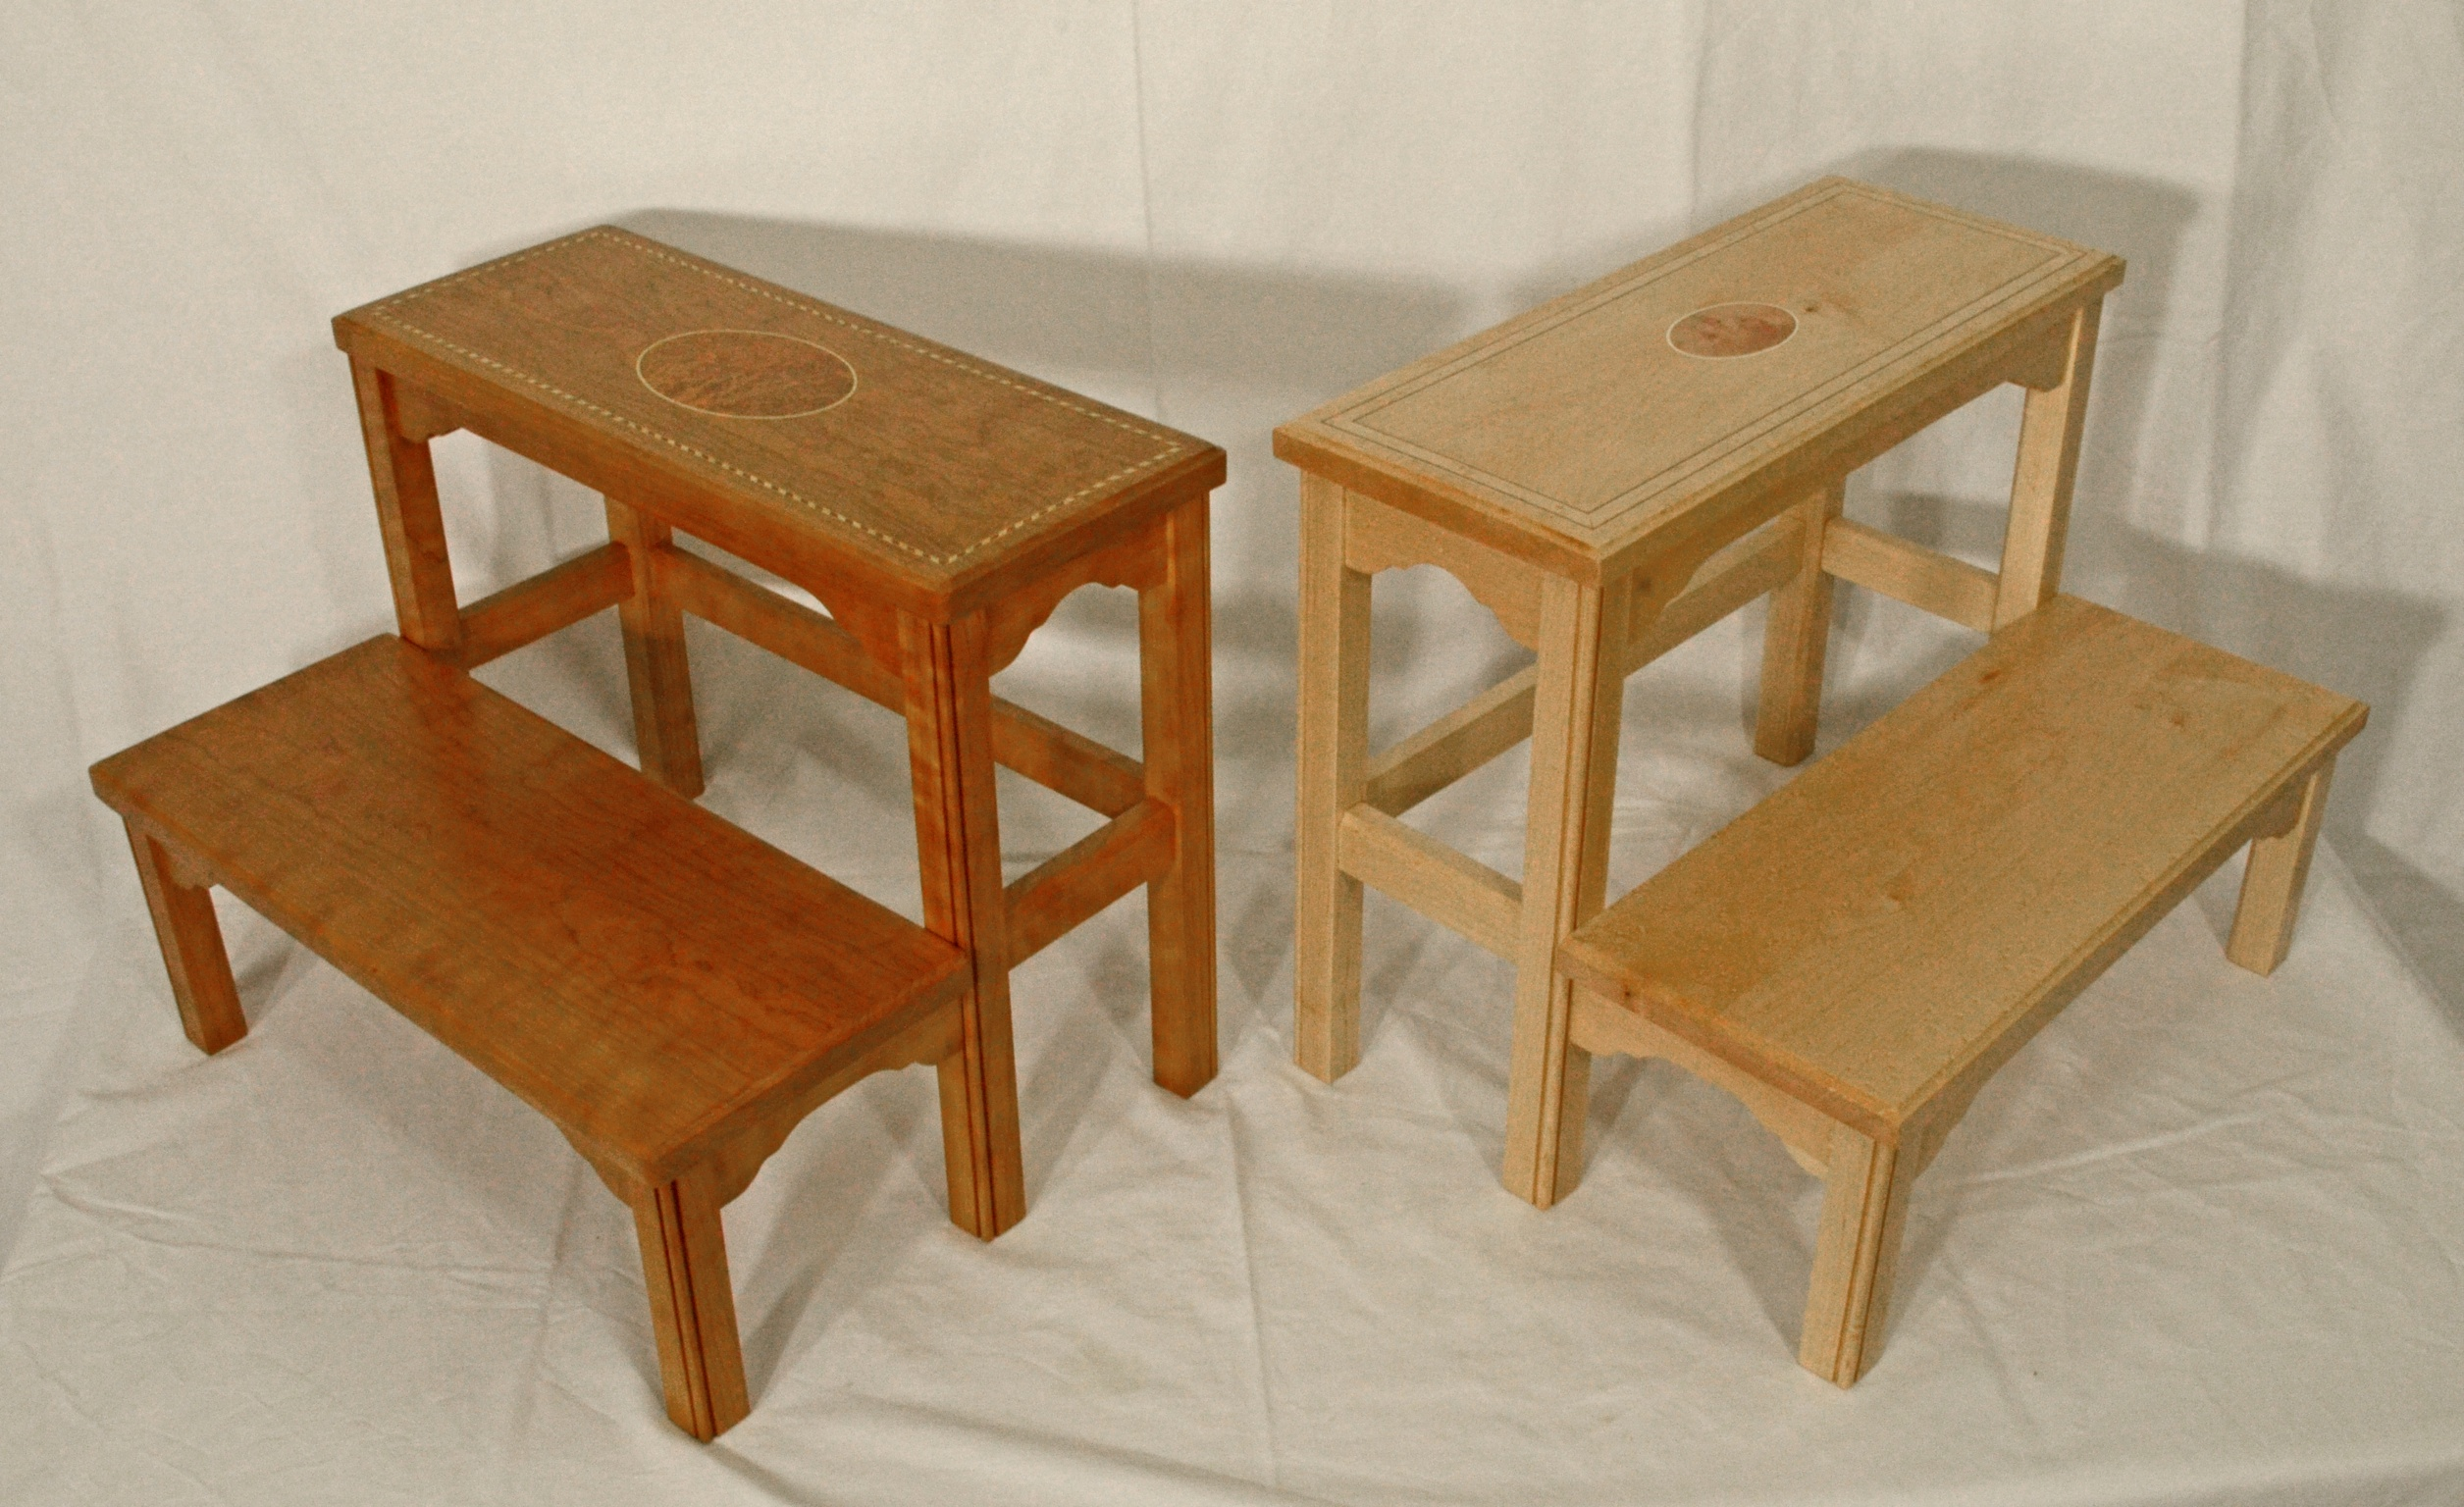 & Cherry Federal Step Stool | SilverPearl Woodworking islam-shia.org